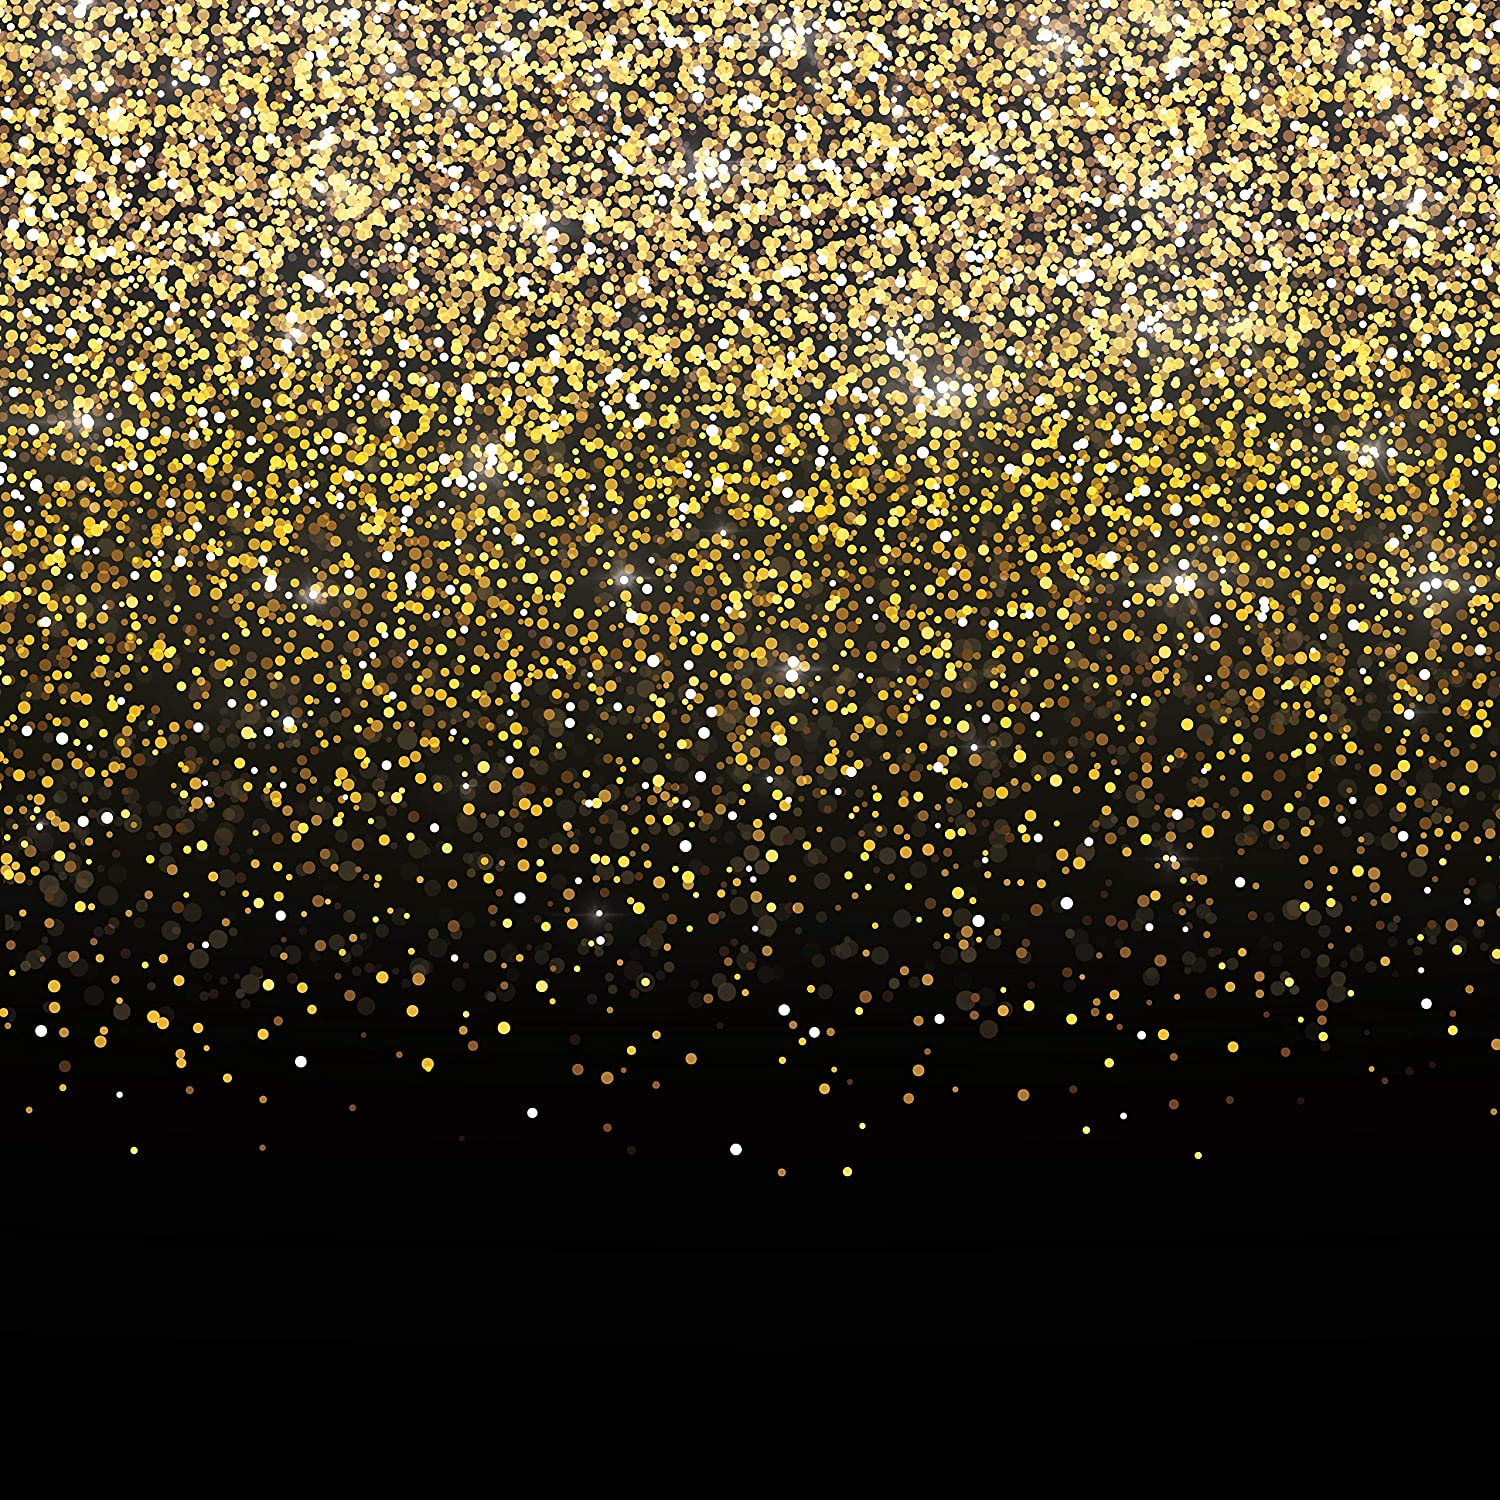 Black and Gold Photo Booth Backdrop | Perfect Party Decoration for Birthday, Bachelorette, Weddings, Graduation, Prom | Gatsby Photo Booth | Zoom Meeting Backdrop | Measures 6ft x 6ft